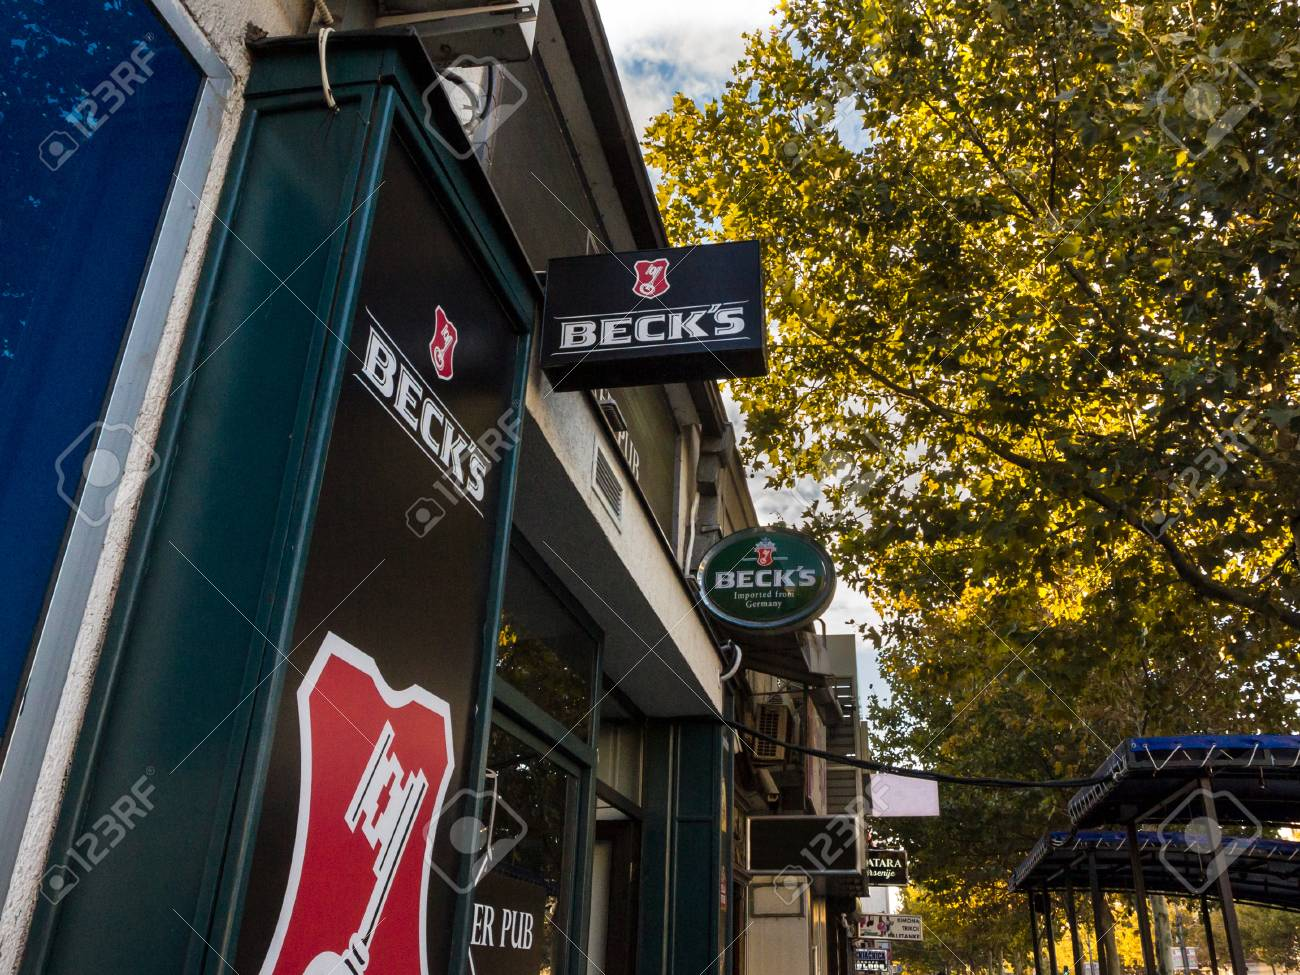 BELGRADE, SERBIA - SEPTEMBER 27, 2018: Logo of Beck's beer on a bar sign with its distinctive visual. Becks is a German light pilsner beer belonging to Interbrew groupPicture of a sign showing the logo of Beck's Beer, on a Serbian bar. Beck's is a light - 111379795